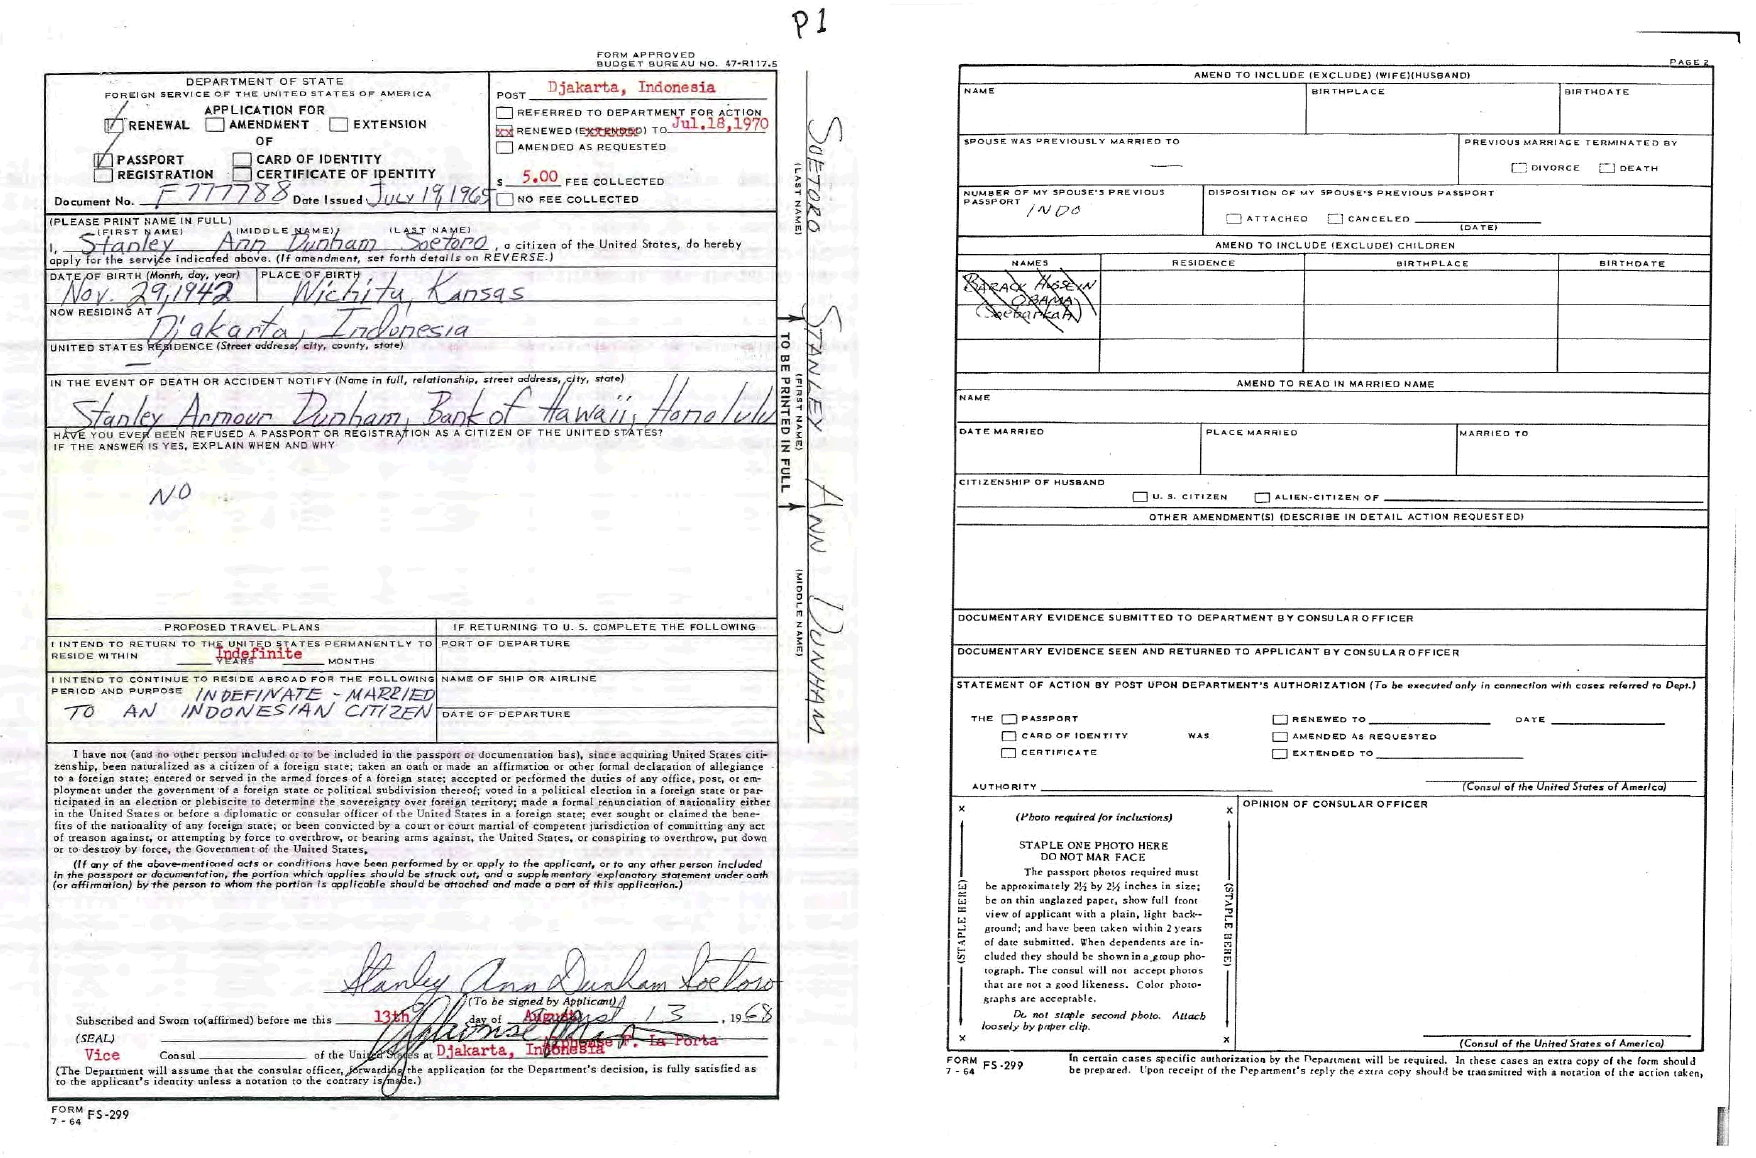 Stanley Ann Dunham Soetoro's 1968 application to renew her U.S. passport. Dunham was preparing to exclude Barack Hussein Obama (Soebarkah) from her passport, but the name was crossed out. 'Soebarkah' is possibly Barack Obama's SUBUD name.